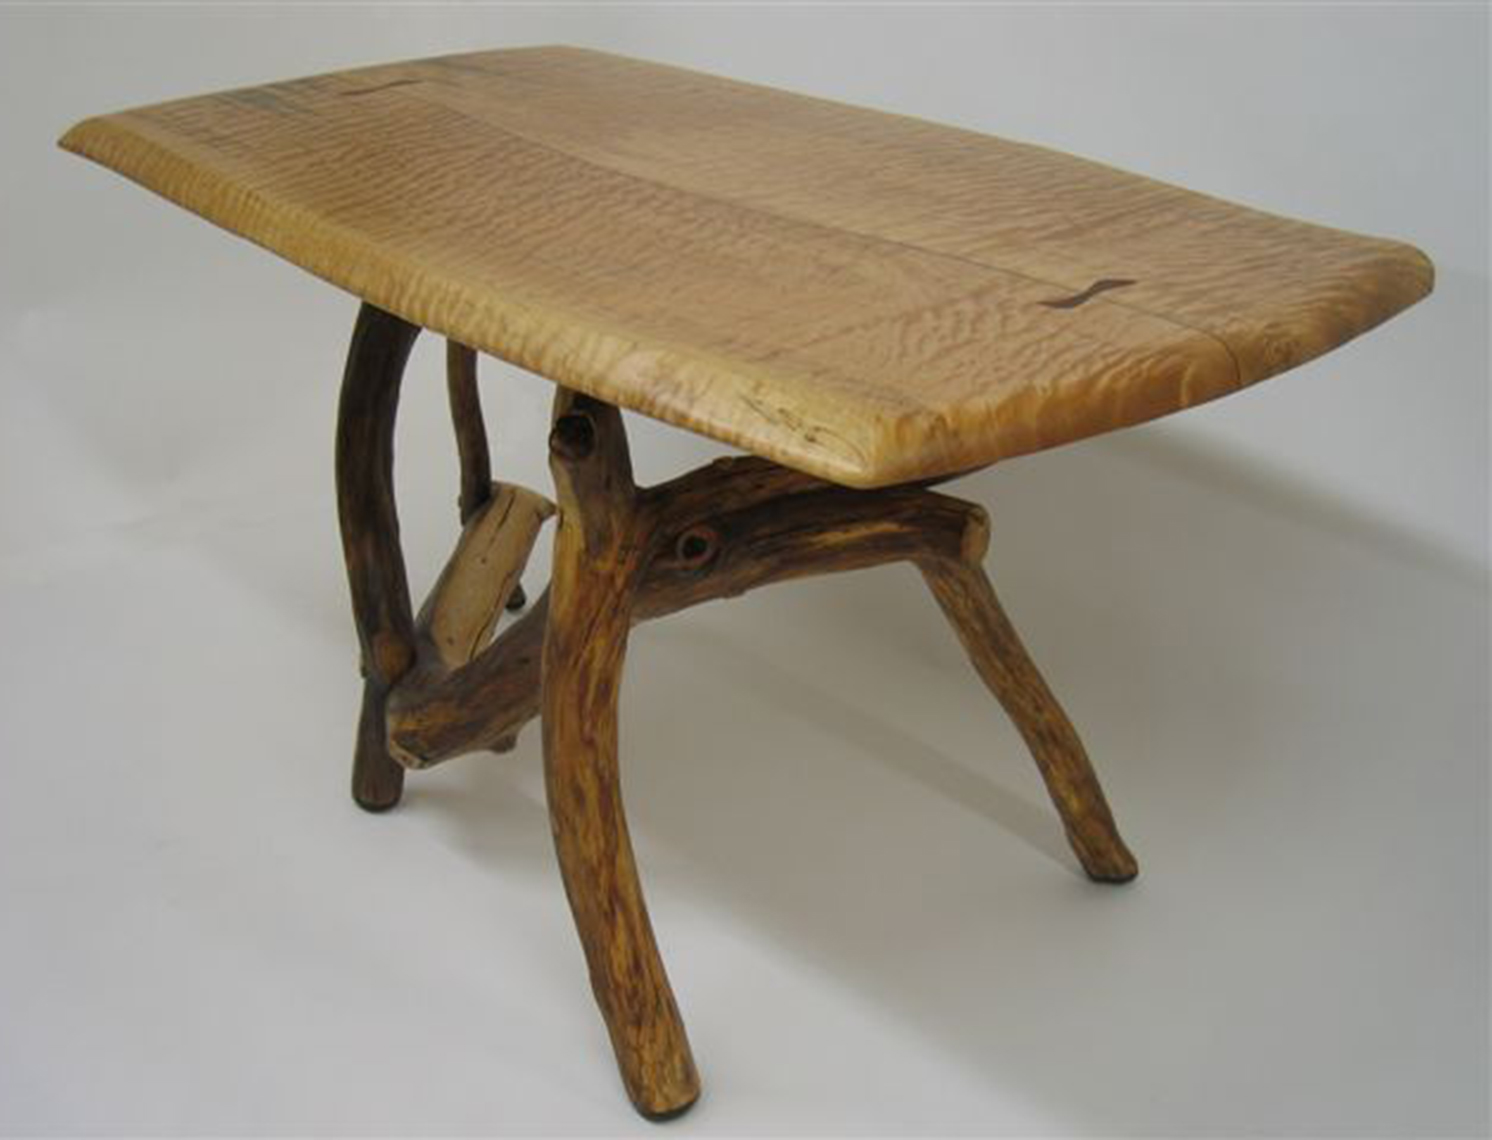 new jersey custom wood furniture-Custom wood working, custom Furniture, artistic-Rustic-Style-Desk-1